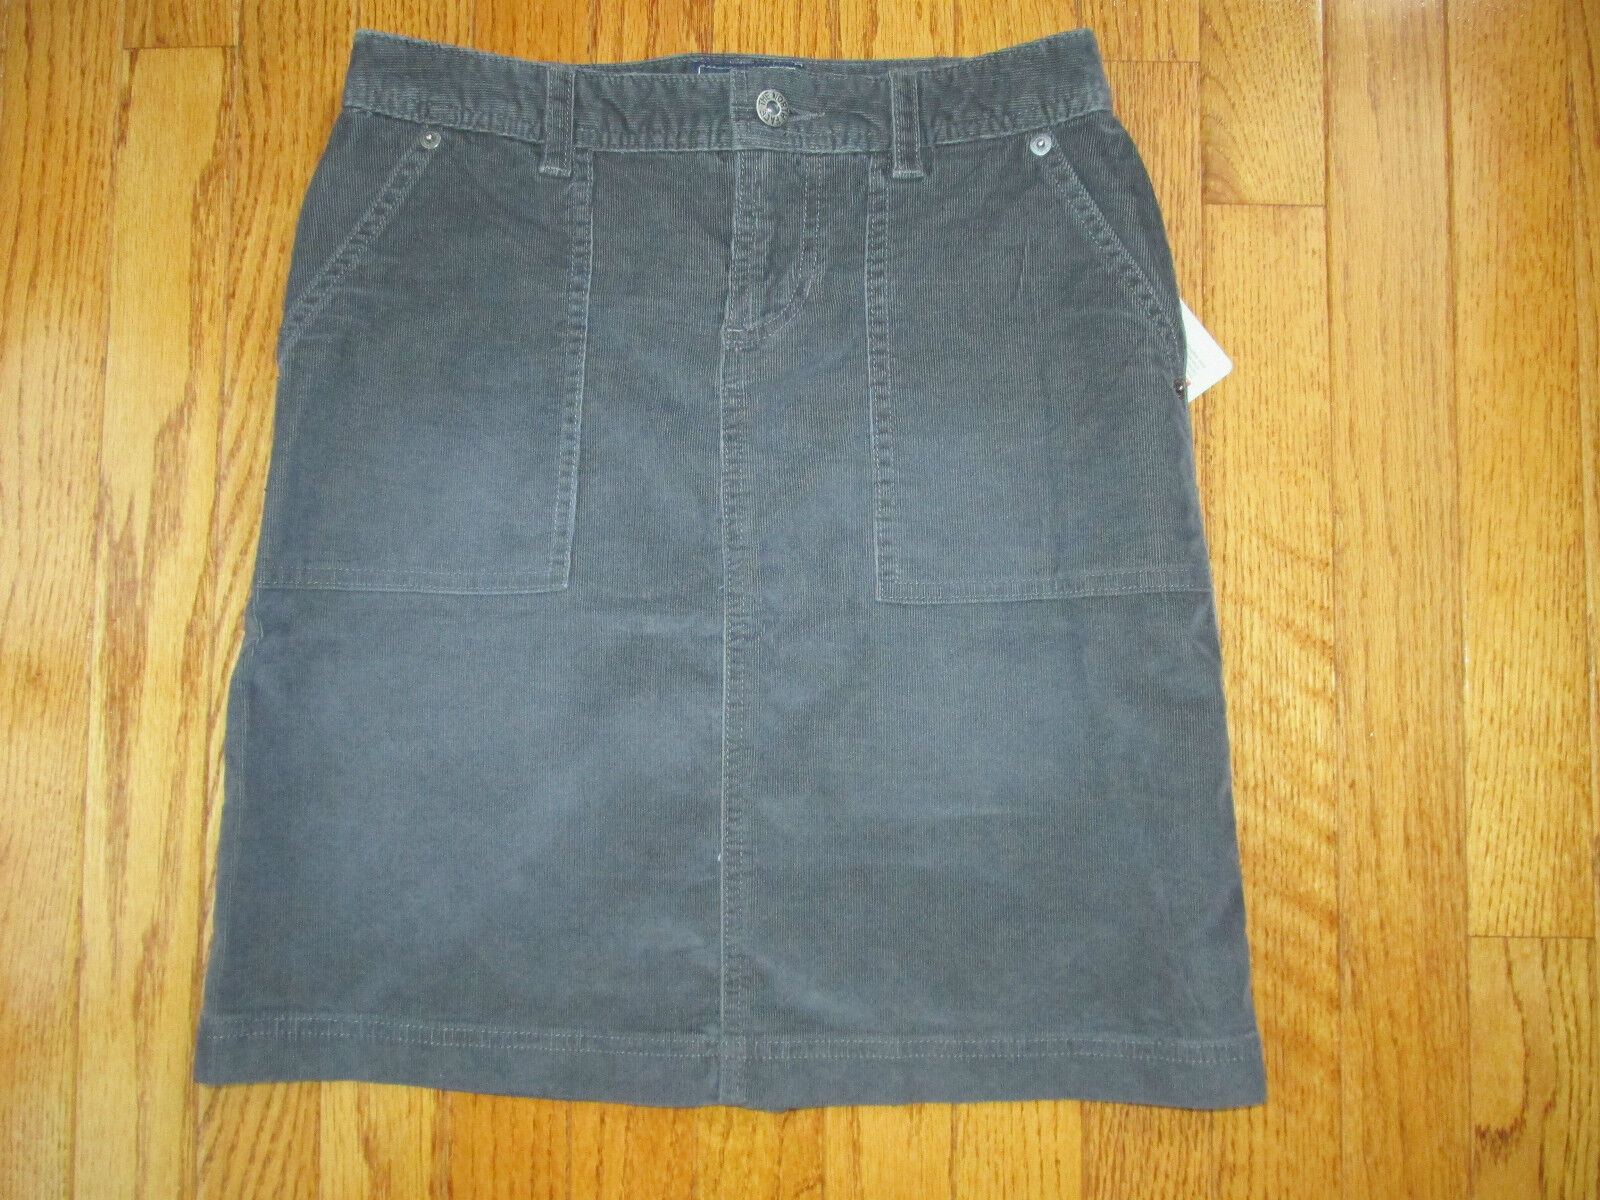 New The North Face Womens Size XS Graphite Grey Nenana Active Cord Skirt